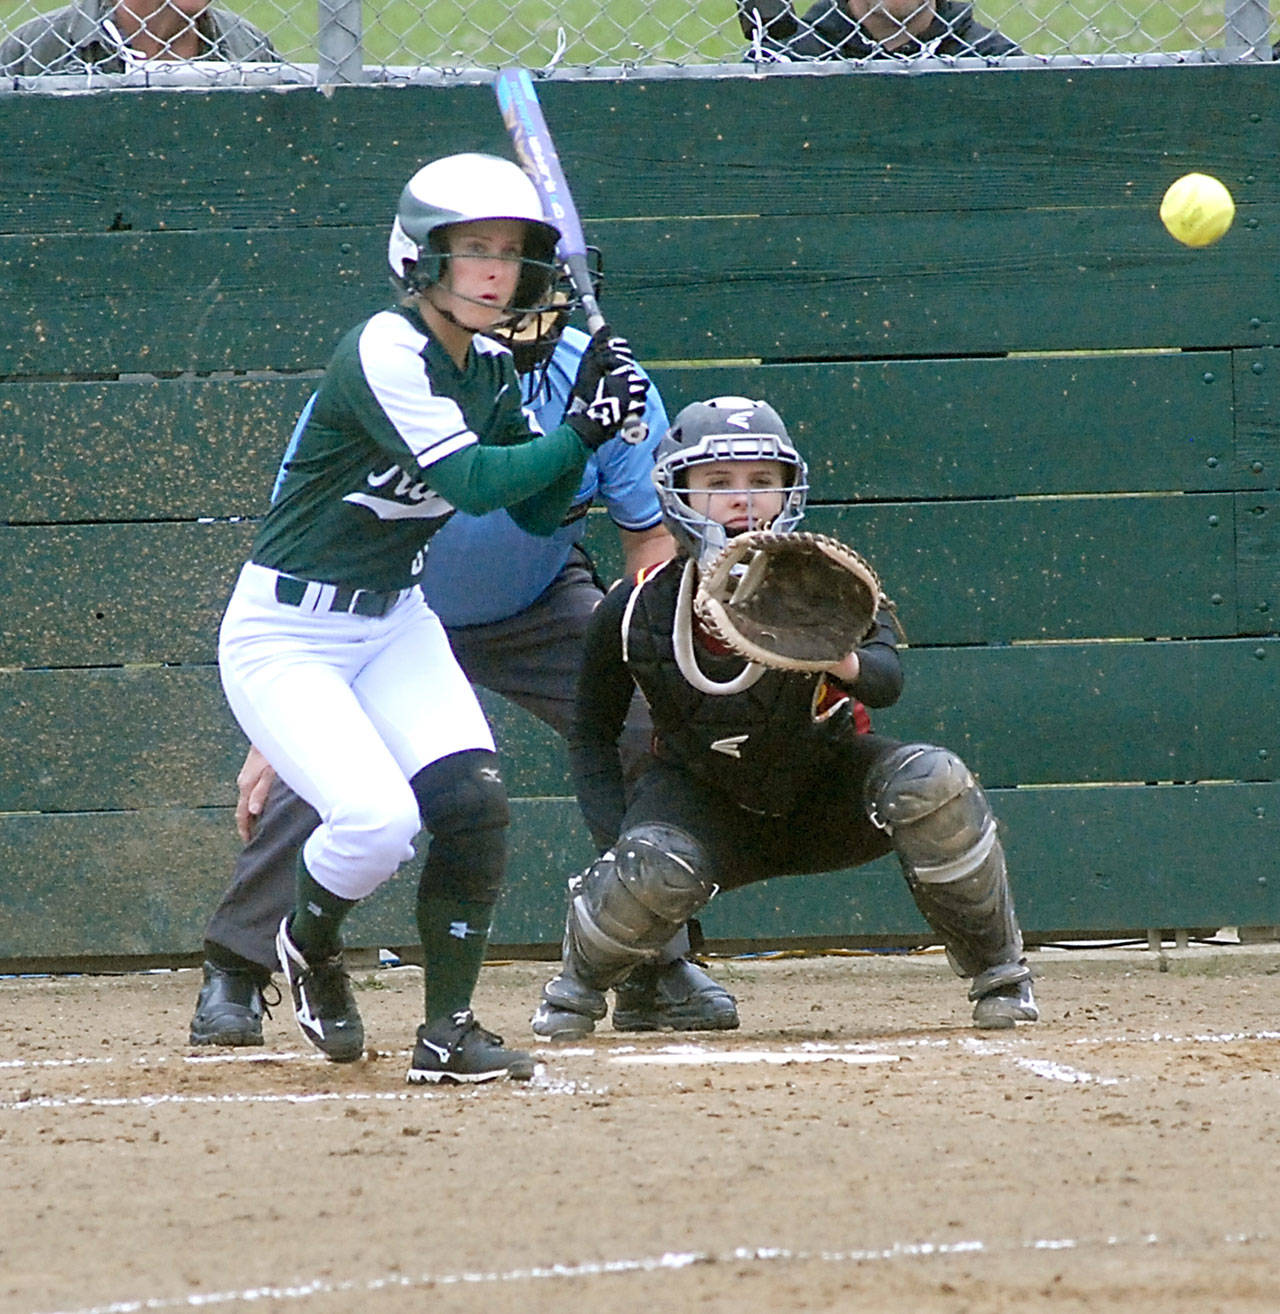 Keith Thorpe/Peninsula Daily News                                Port Angeles' Sierra Robinson bats as Kingston catcher Meghan Fenwick waits for the delivery during their May 9 game at the Dry Creek athletic fields.